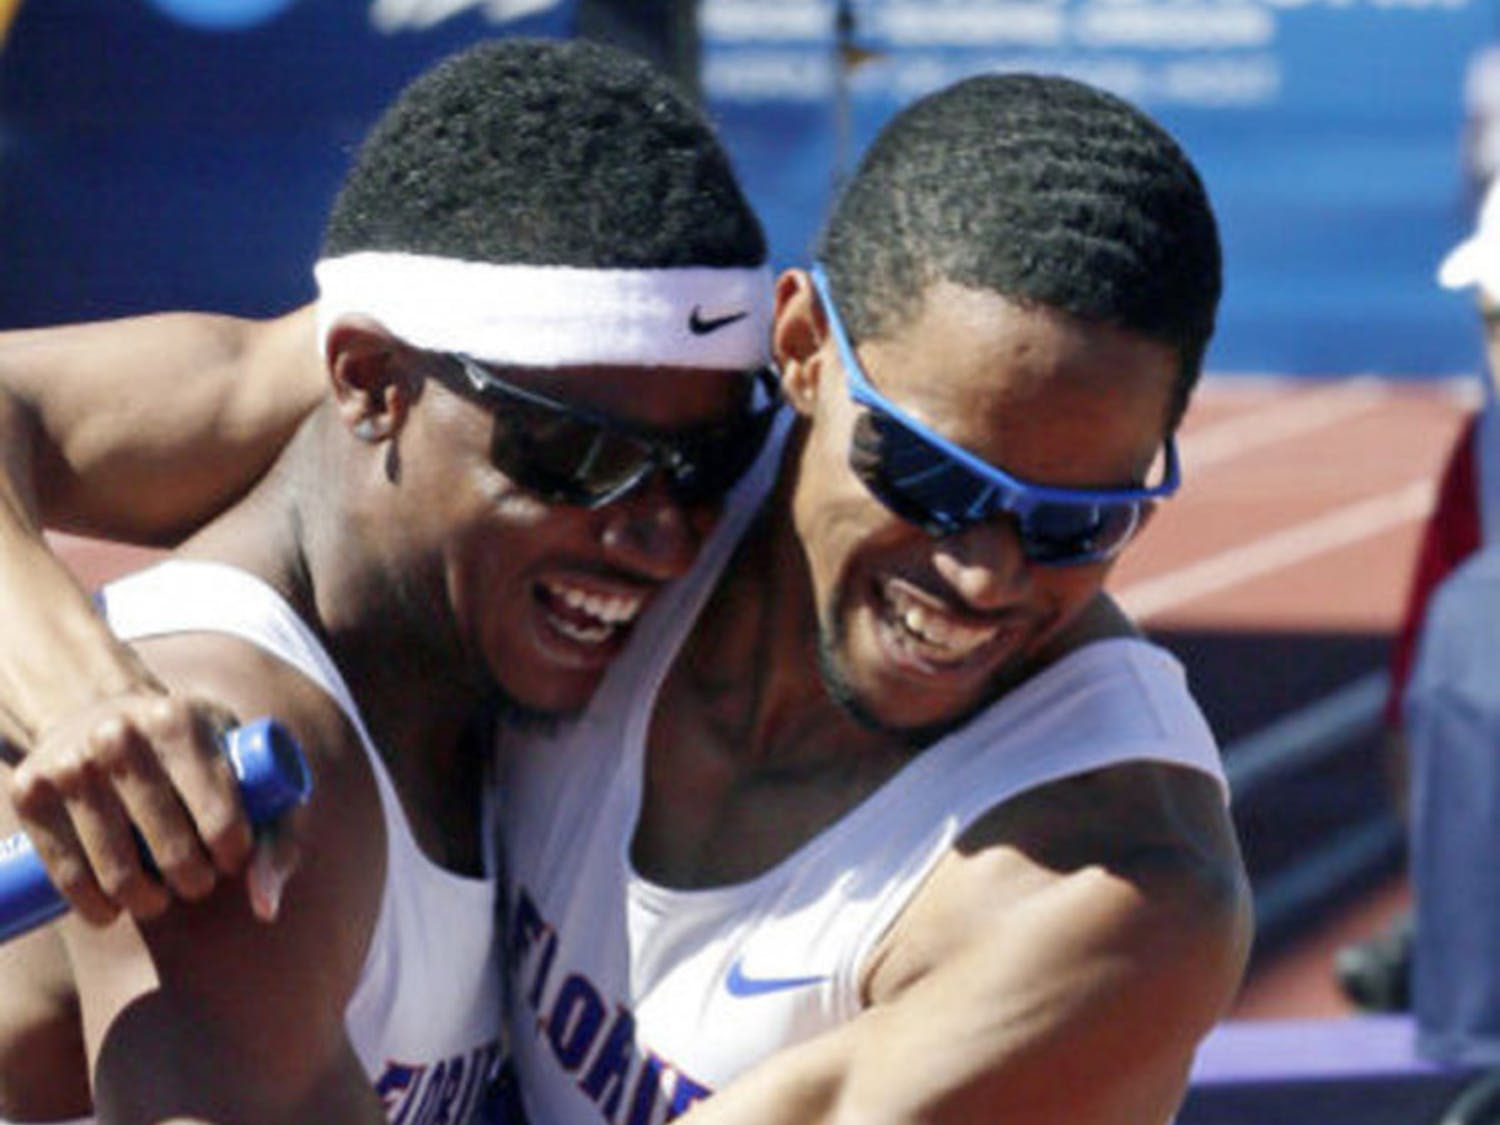 Hugh Graham Jr. (left) hugs Arman Hall after winning the 4x400m relay during the NCAA Outdoor Championships in Eugene, Ore., on Jun. 8, 2013.